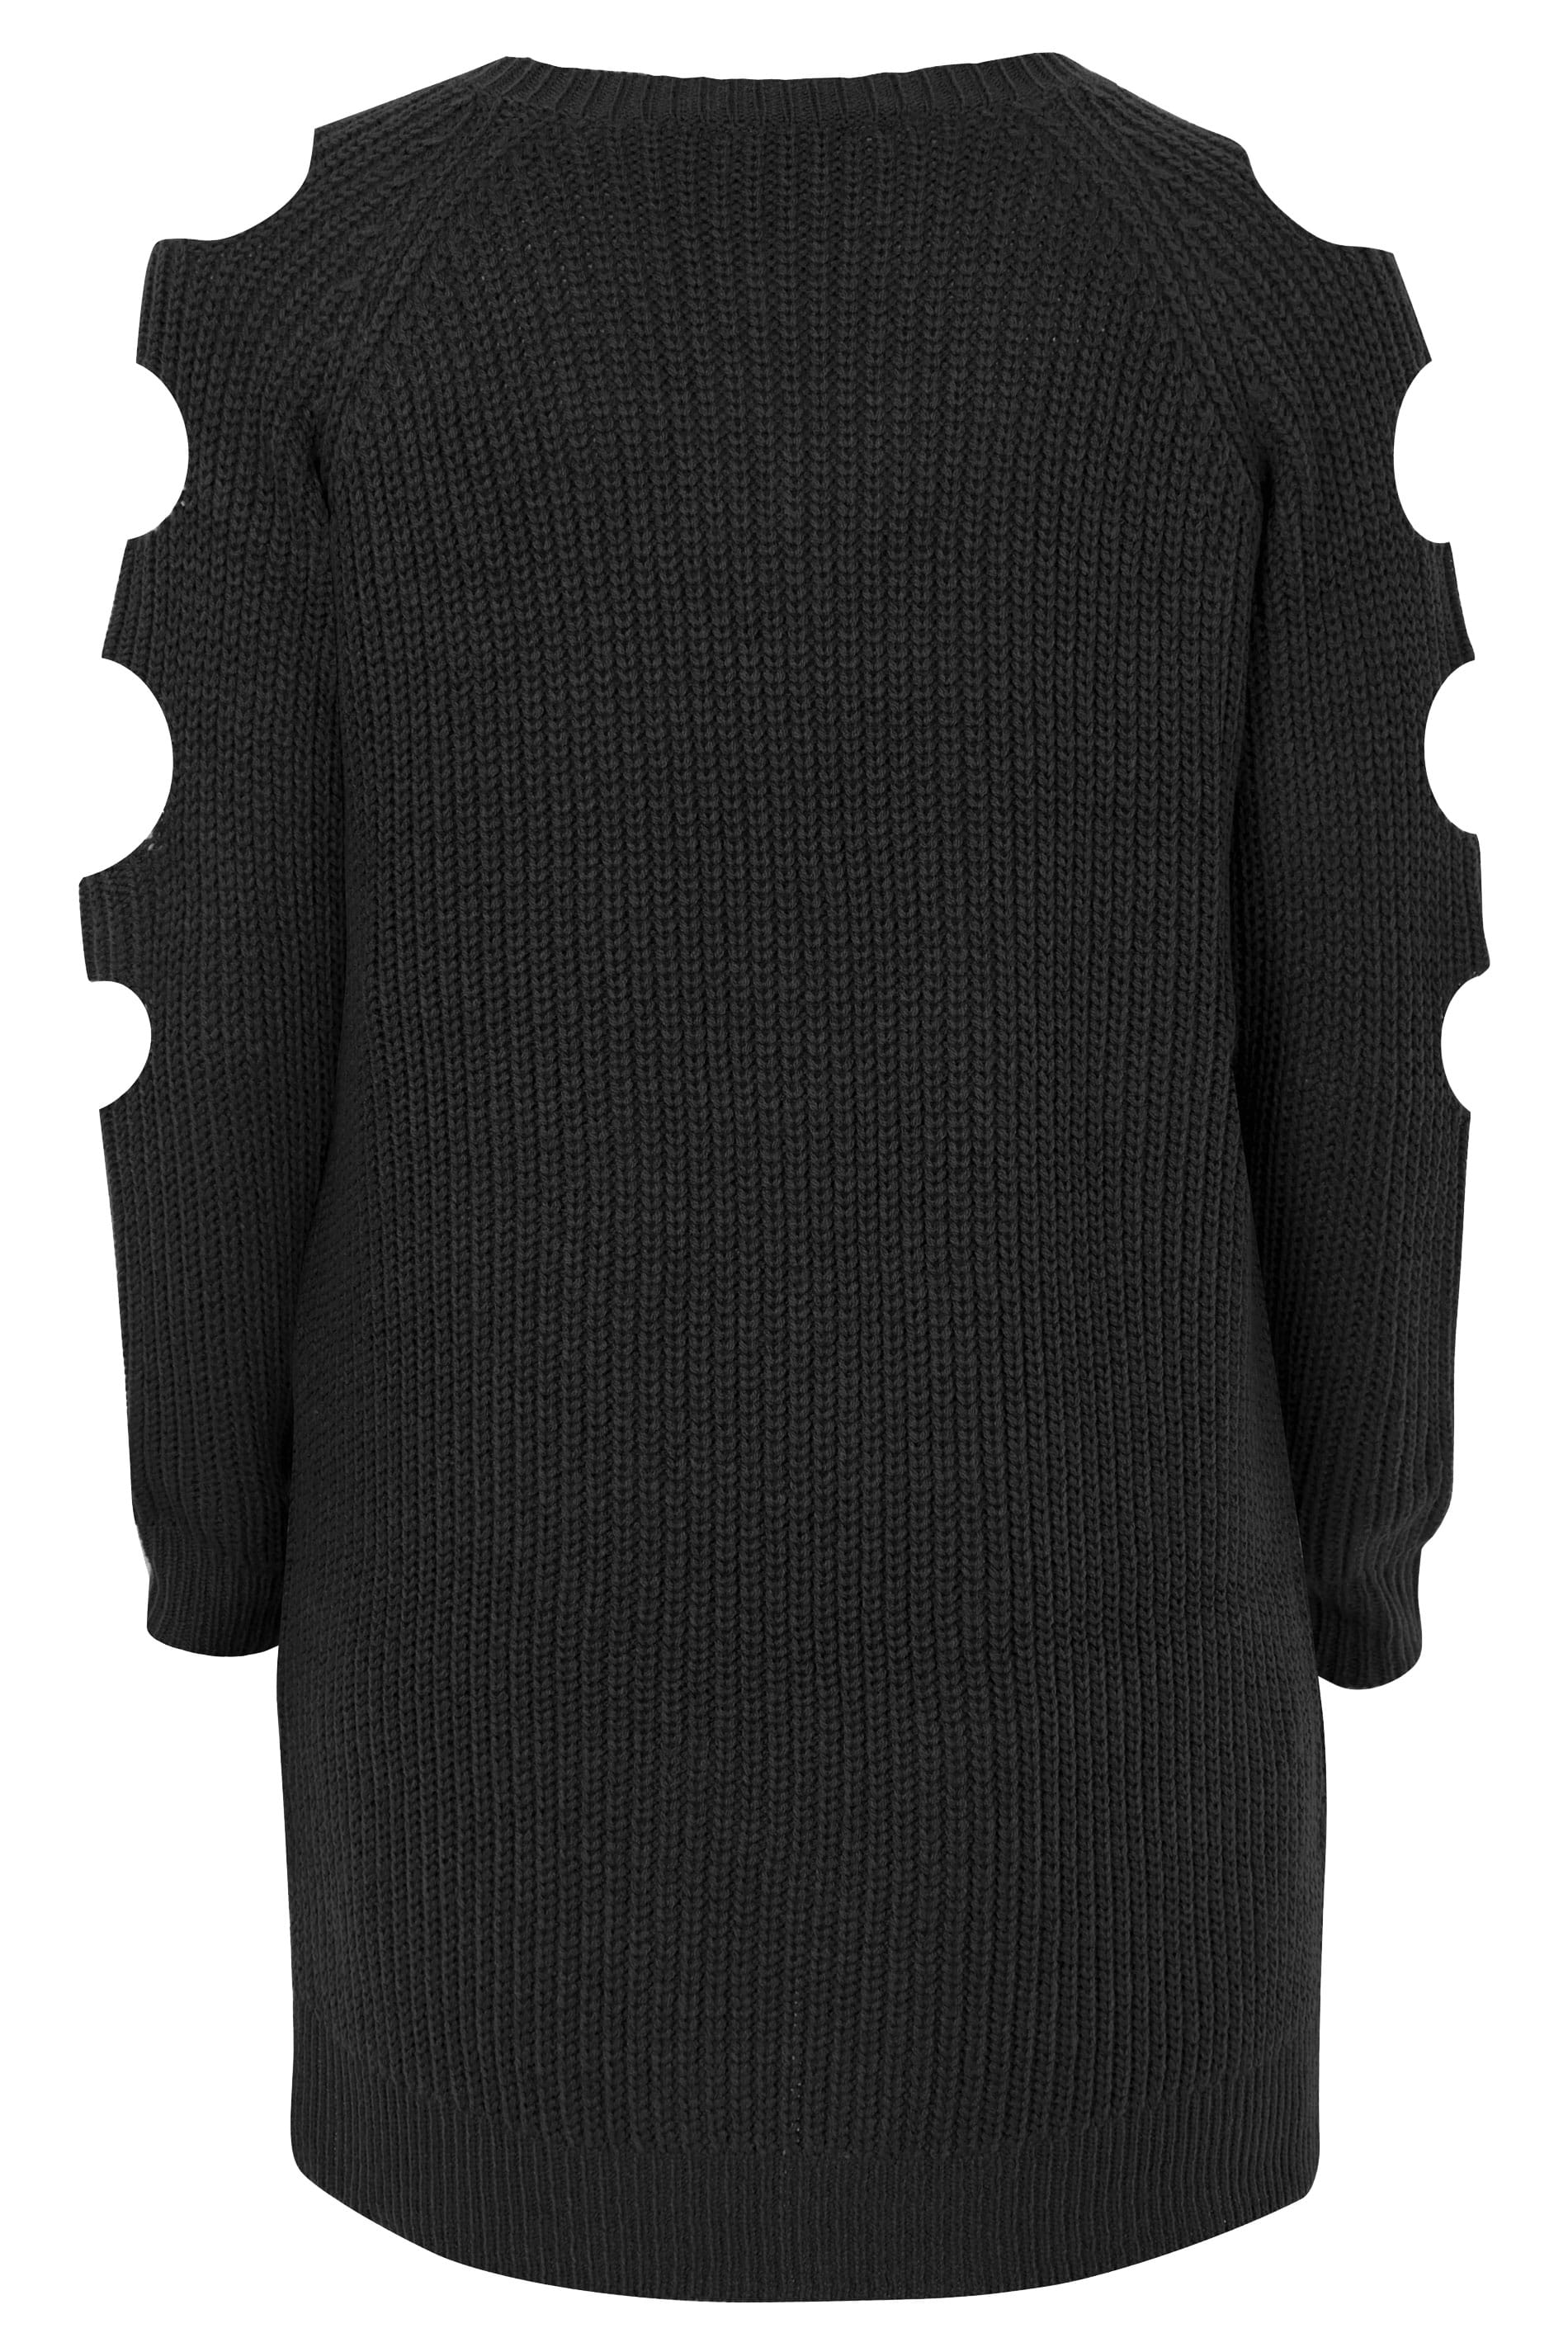 aa6b3fffd2f Black Chunky Knit Longline Jumper With Cut Out Sleeves